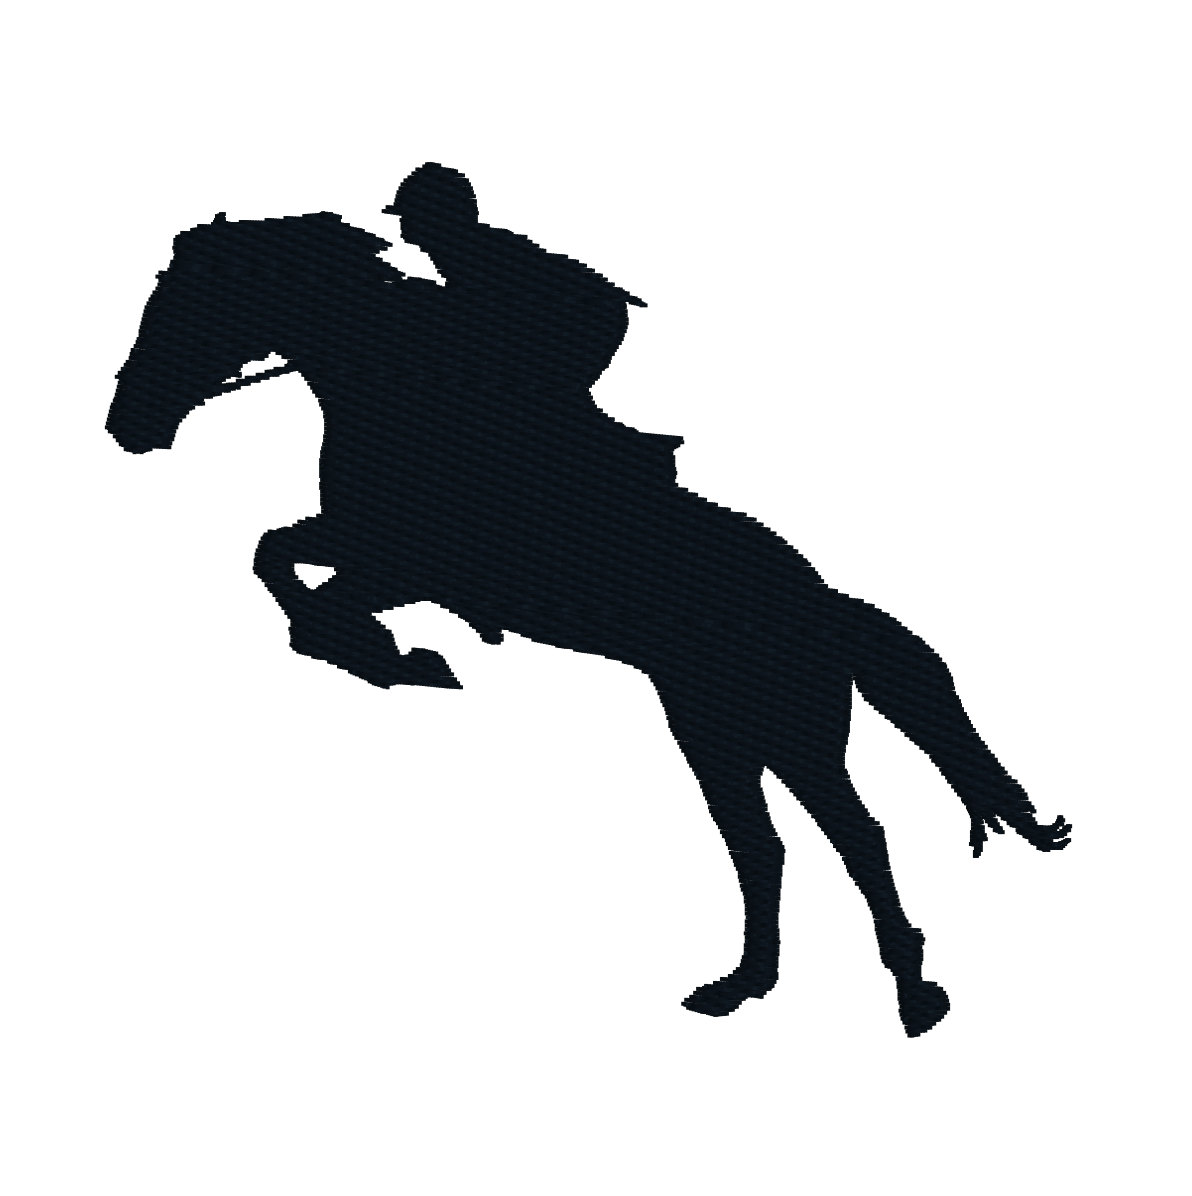 horse silhouette jumping at getdrawings com free for personal use rh getdrawings com Jumping Horse Outline jumping horse clip art images